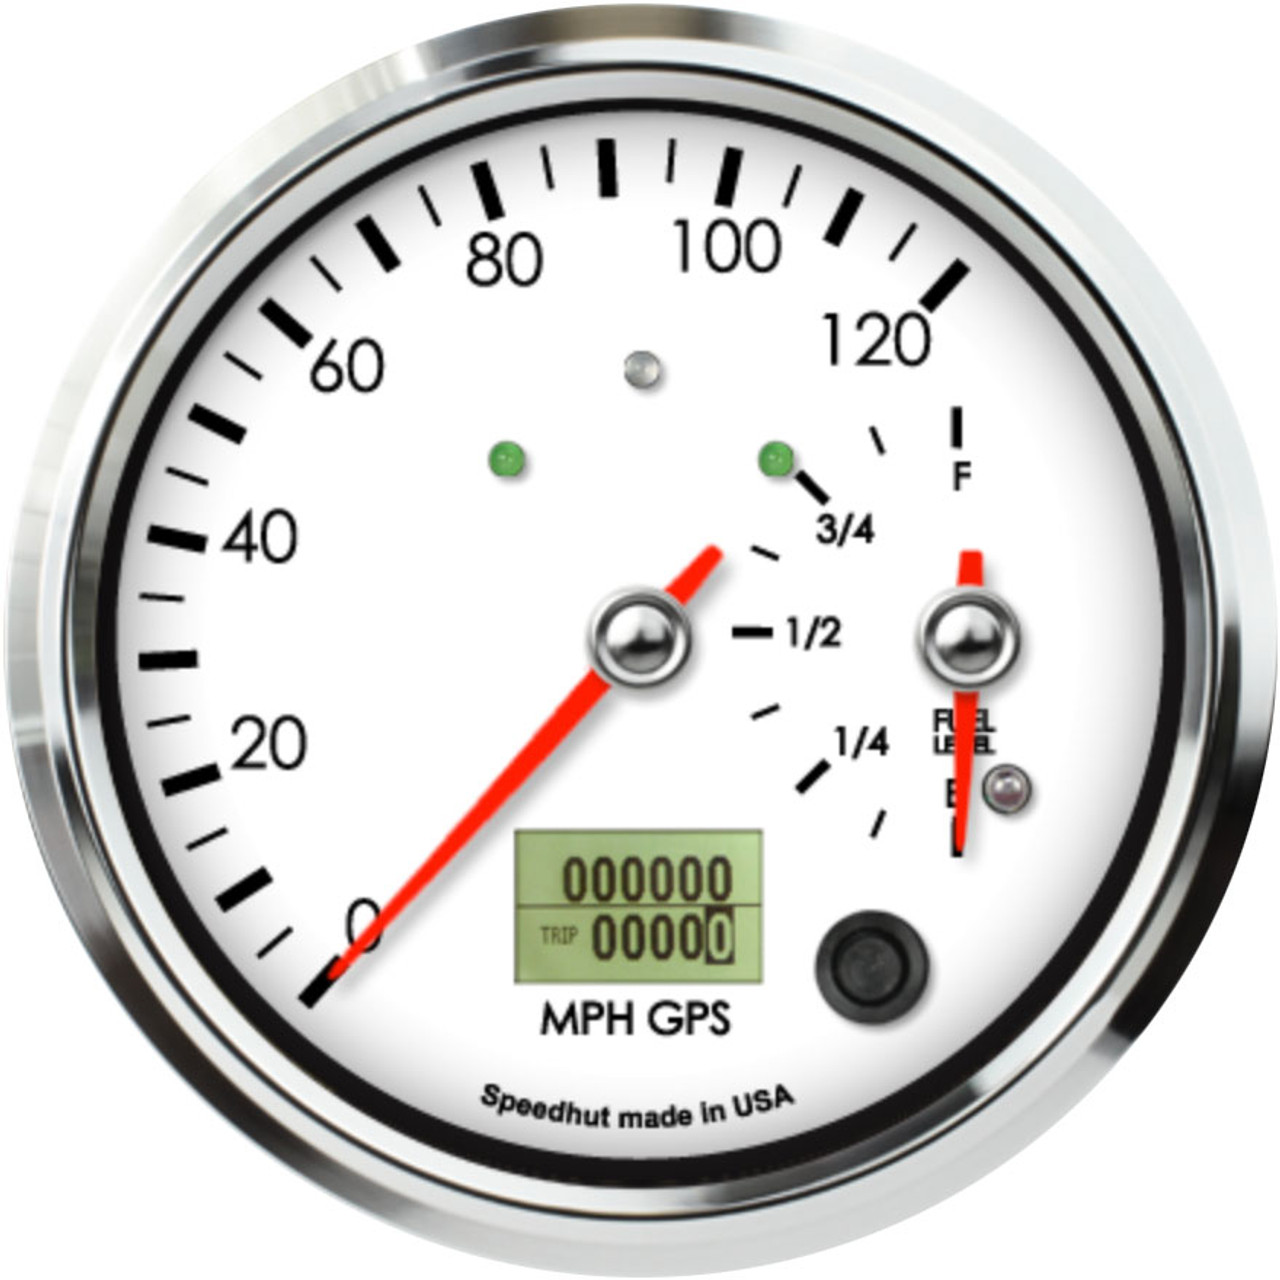 """4-1/2"""" Classic Dual Gauge - 120mph GPS Speedometer / Fuel Level (w/ turn signal and high beam)"""